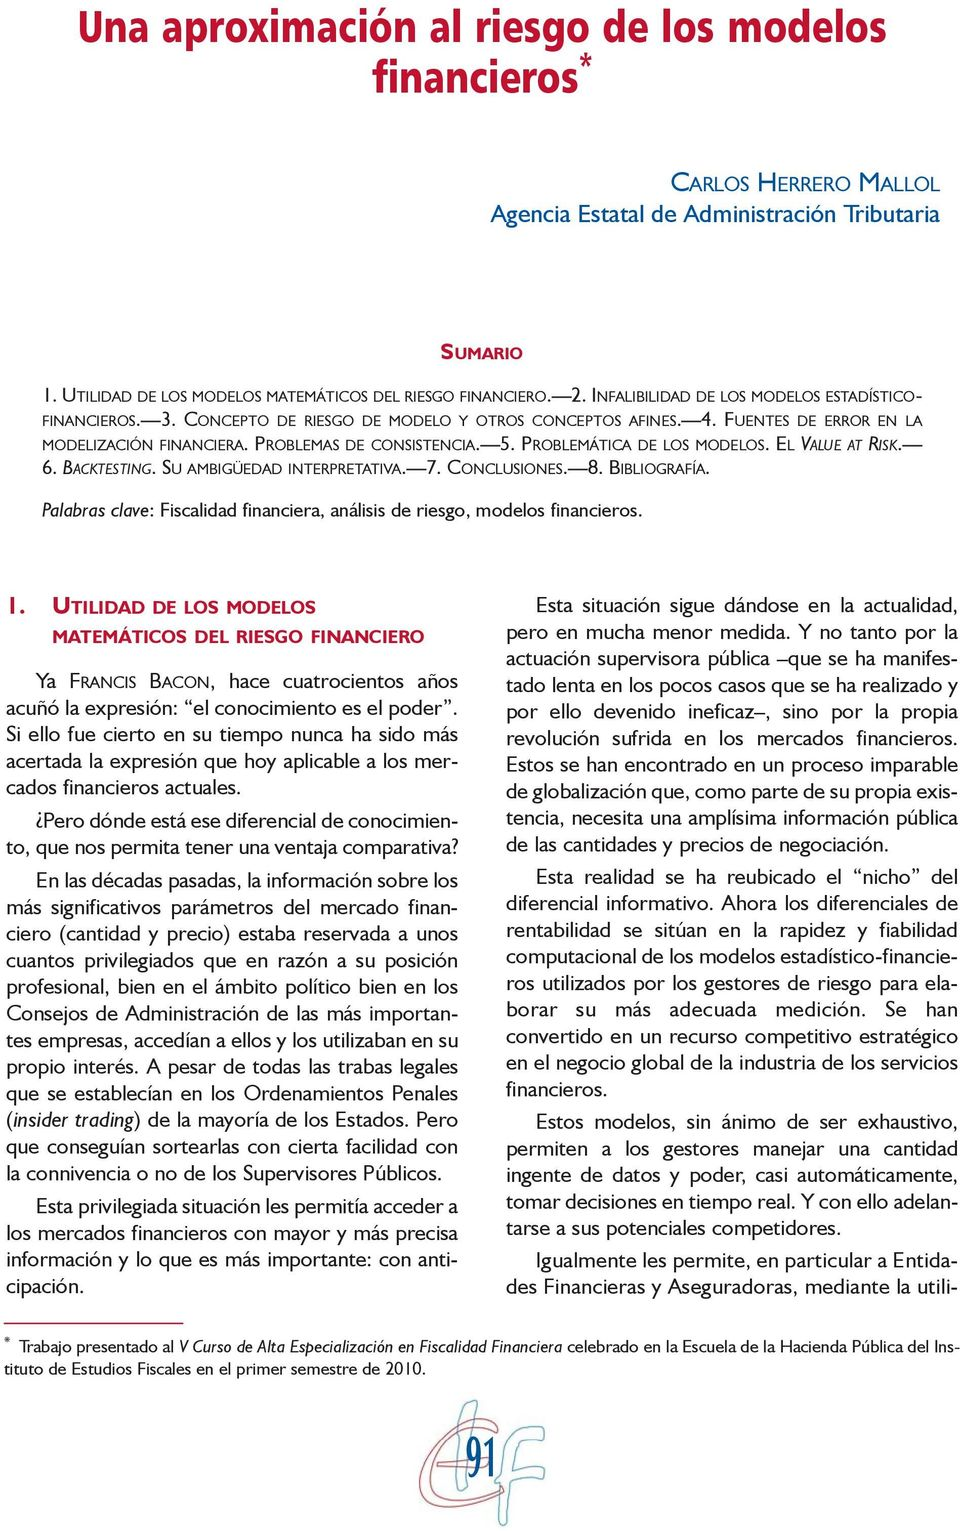 PROBLEMÁTICA DE LOS MODELOS. EL VALUE AT RISK. 6. BACKTESTING. SU AMBIGÜEDAD INTERPRETATIVA. 7. CONCLUSIONES. 8. BIBLIOGRAFÍA.